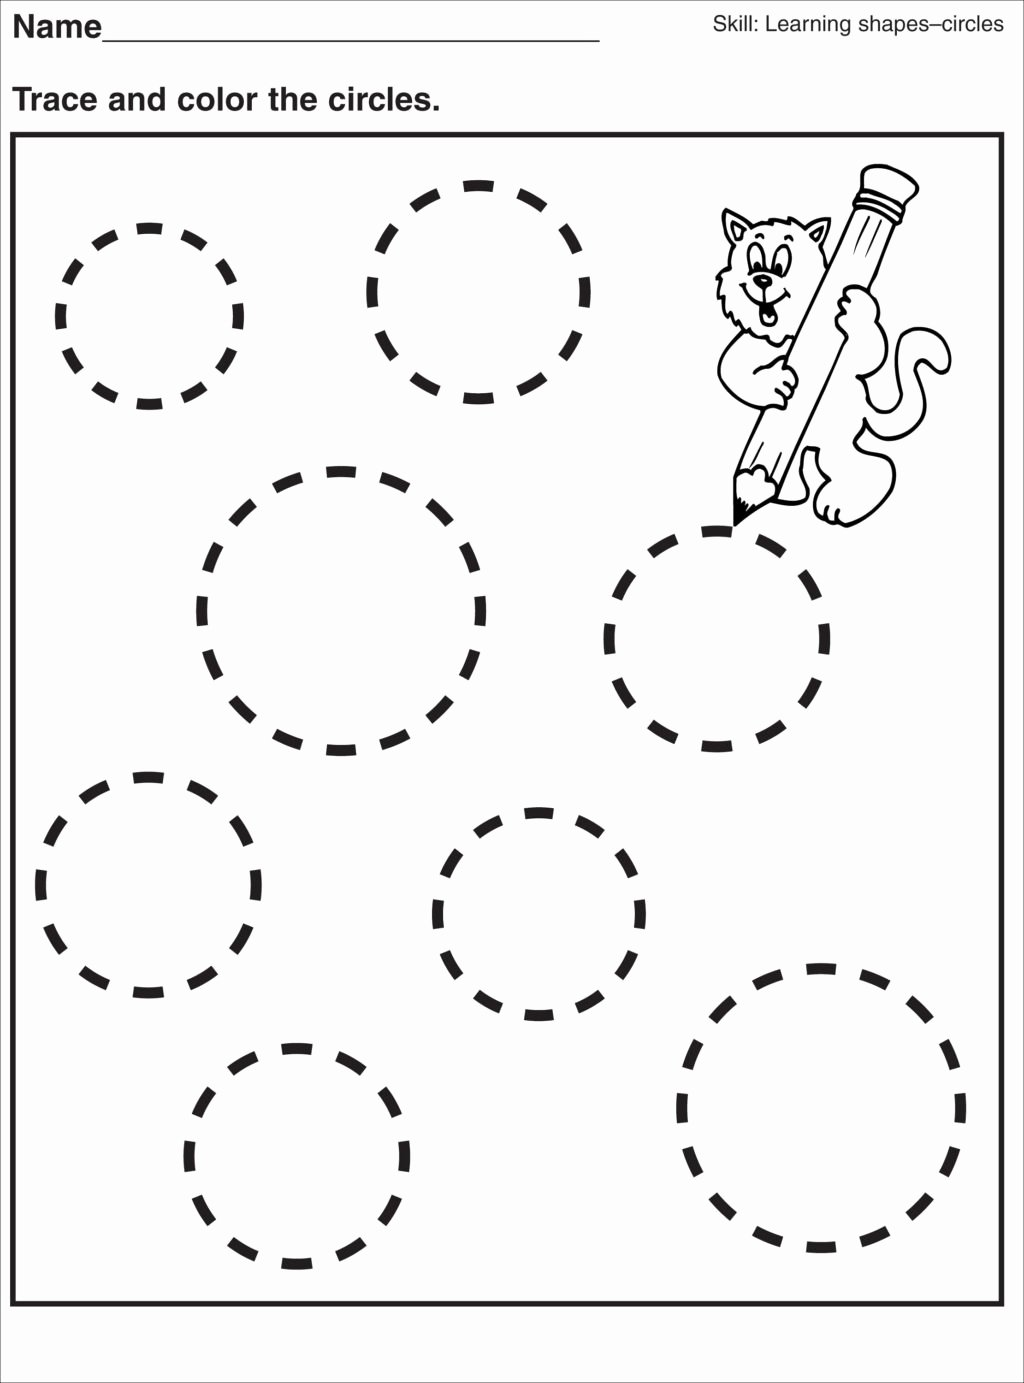 Worksheets for Preschoolers About Shapes Lovely Worksheet Tracing Pagesor Preschool Shapes Worksheet